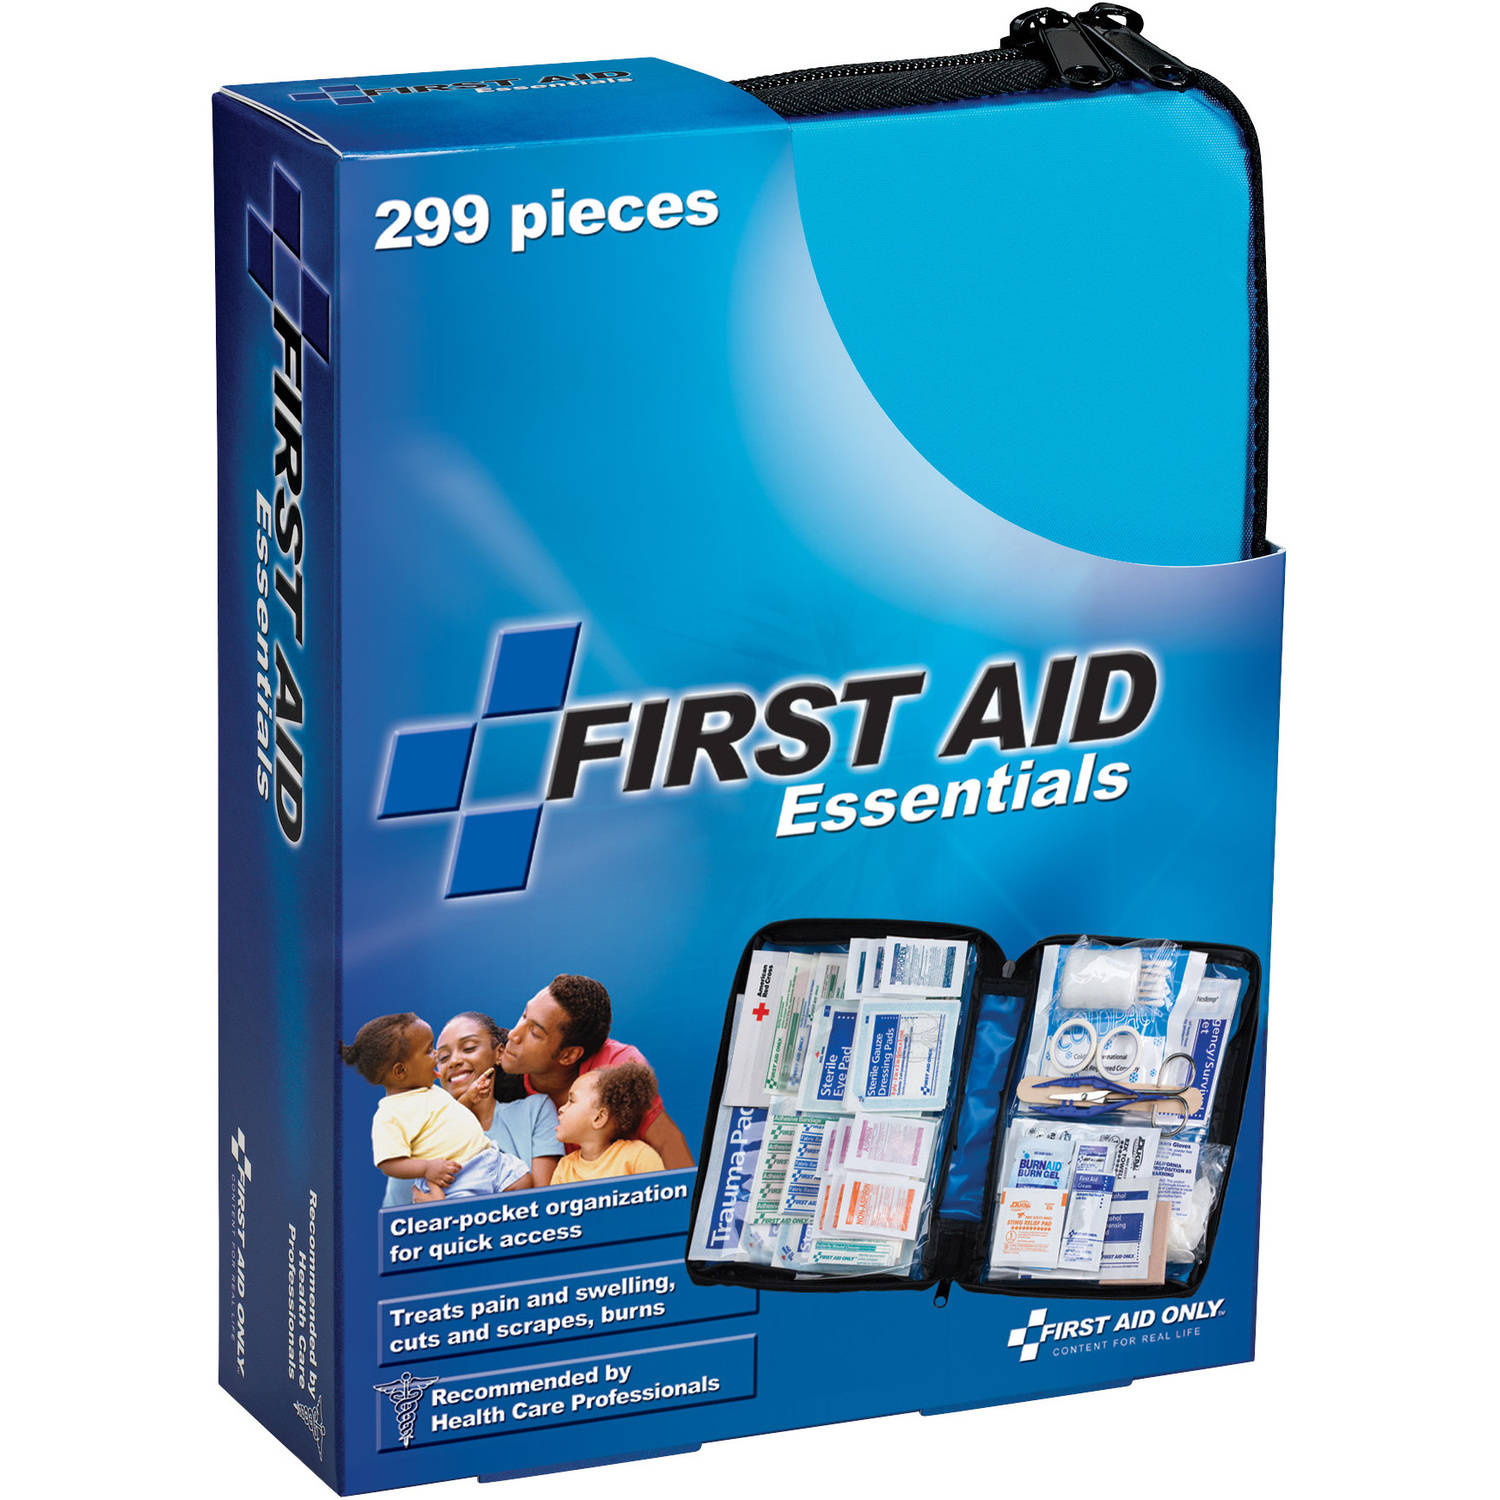 First Aid Only First Aid Essentials Kit, 299 Piece, Fabric Case